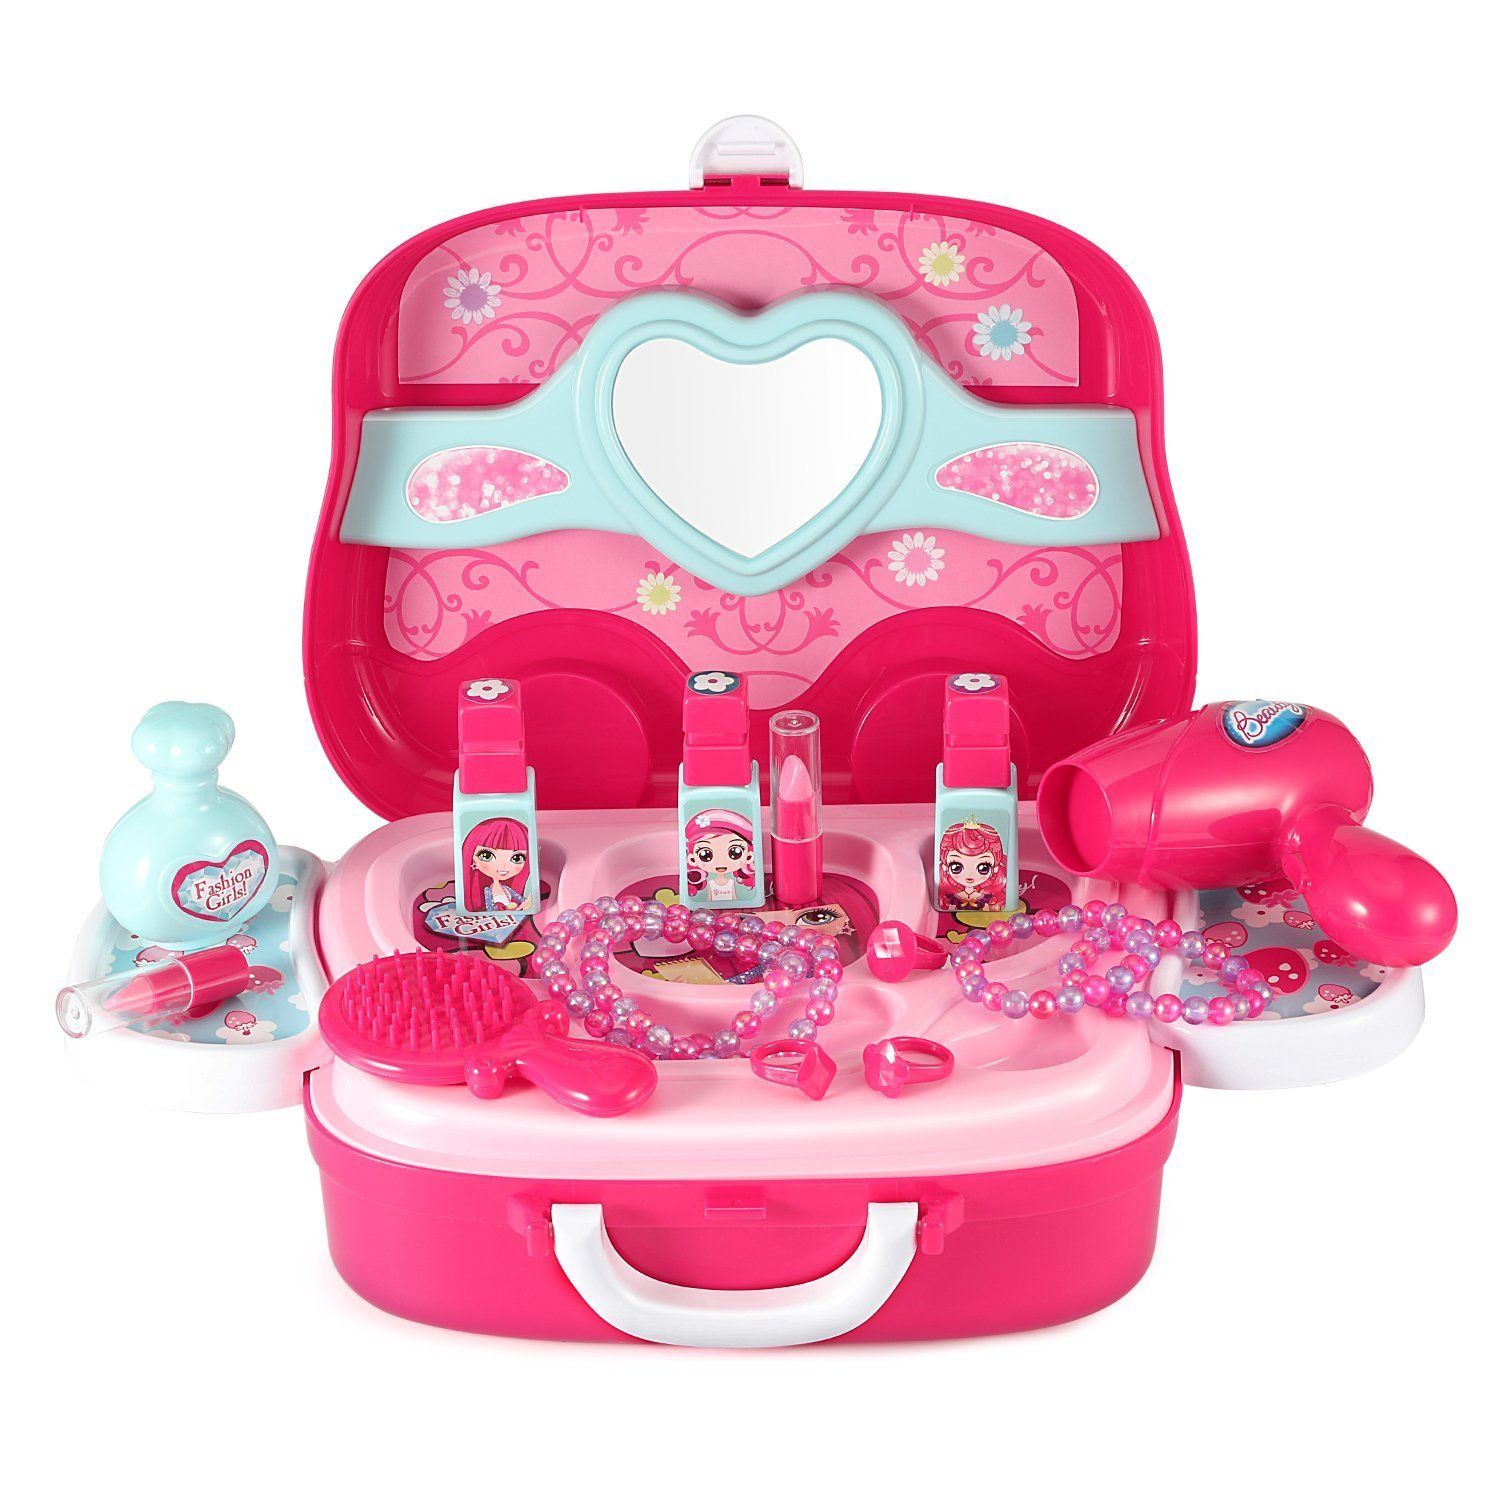 Lifetandy Make Up Box Toy Set For Baby Little Girl Plastic